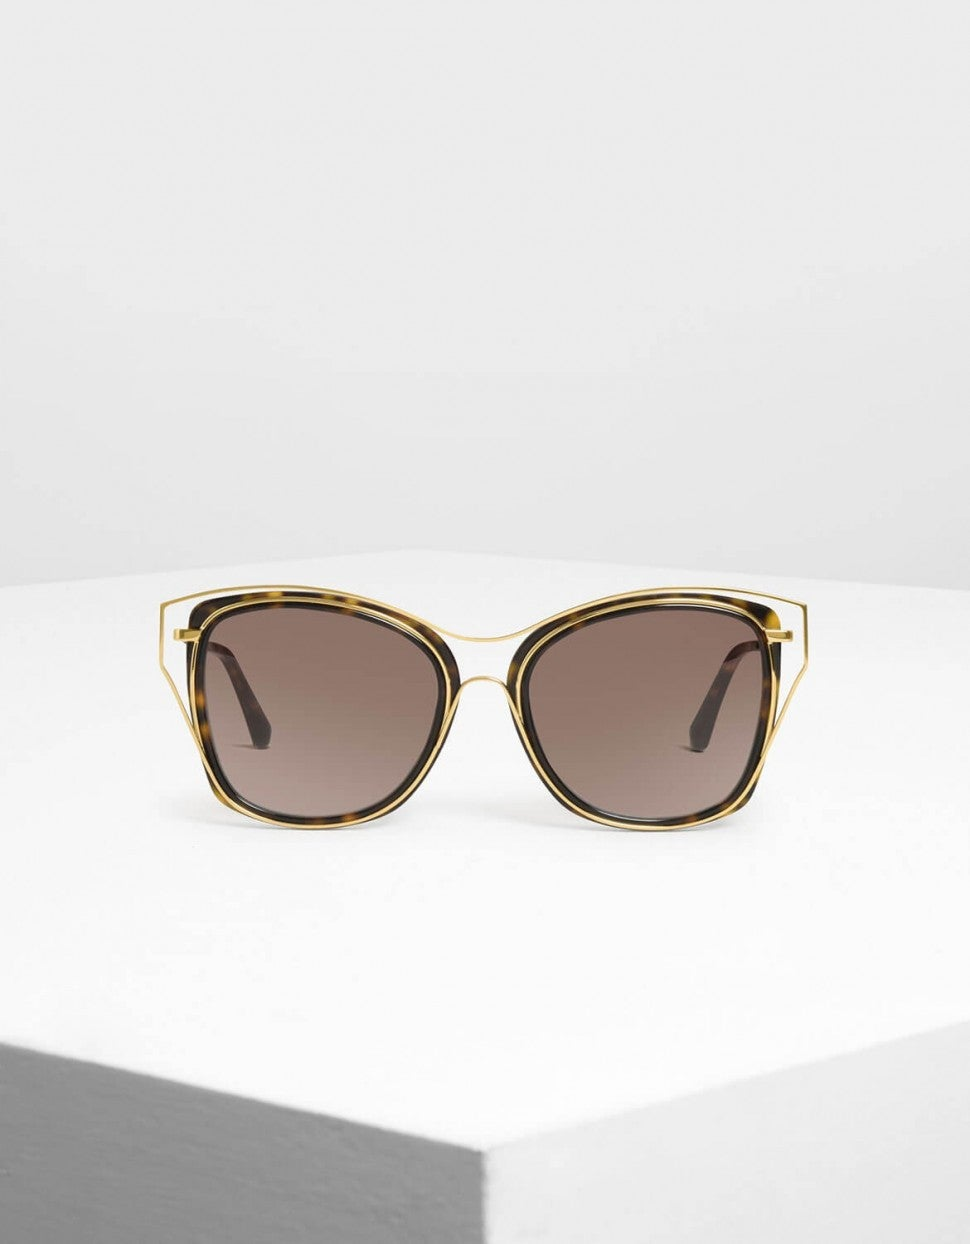 Charles & Keith double frame sunglasses